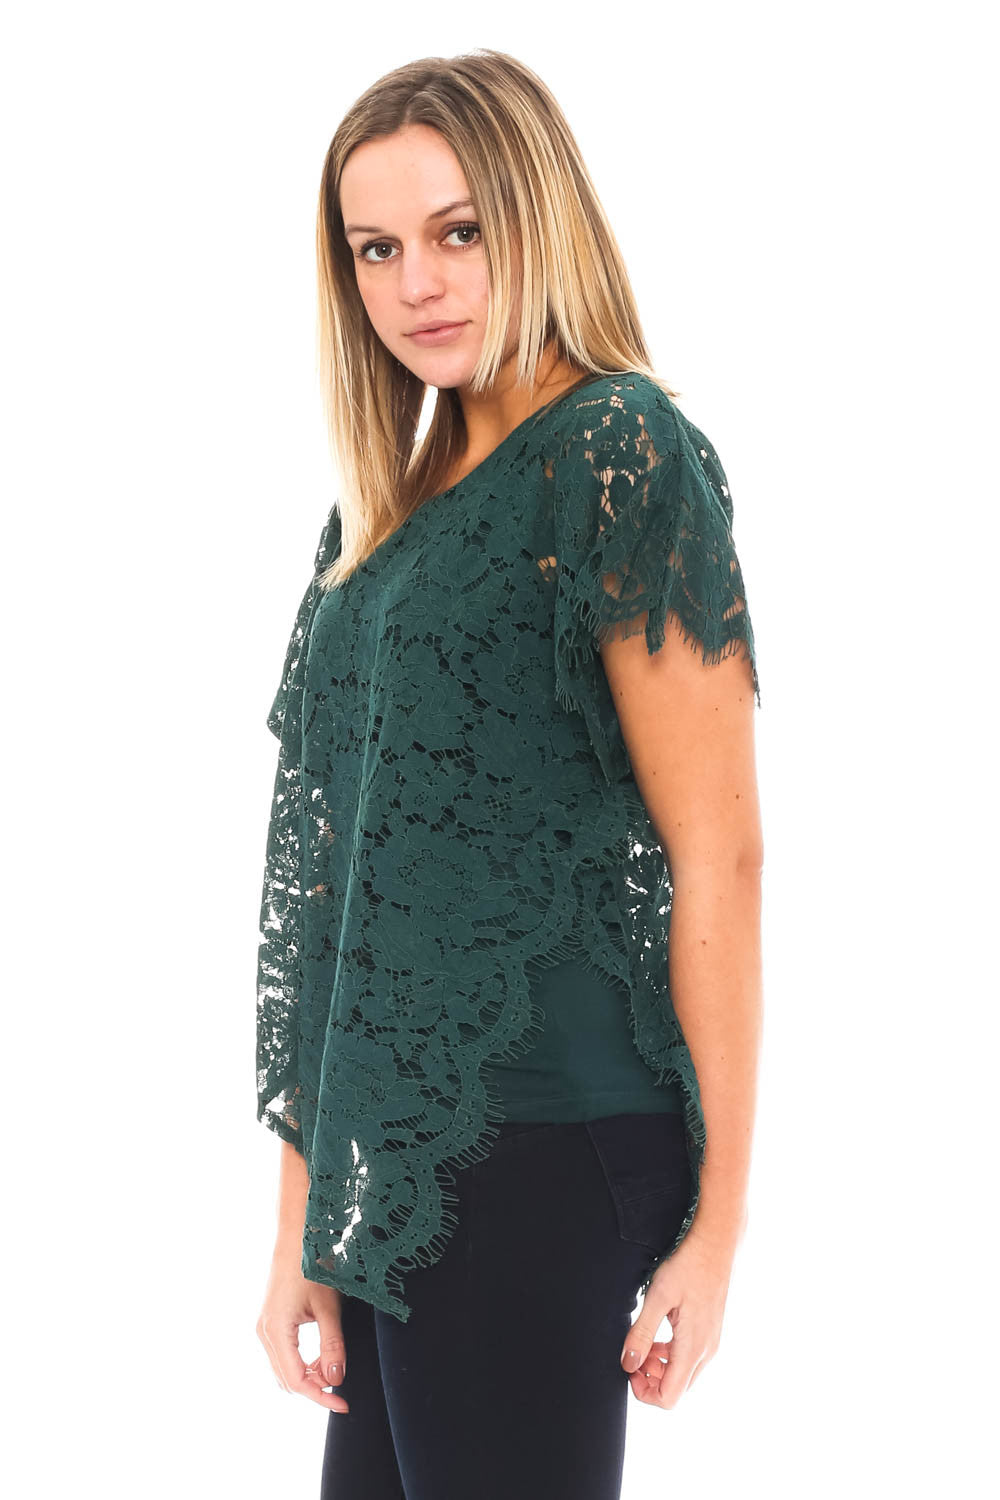 Blouse - Asymmetrical Lace Top by Democracy